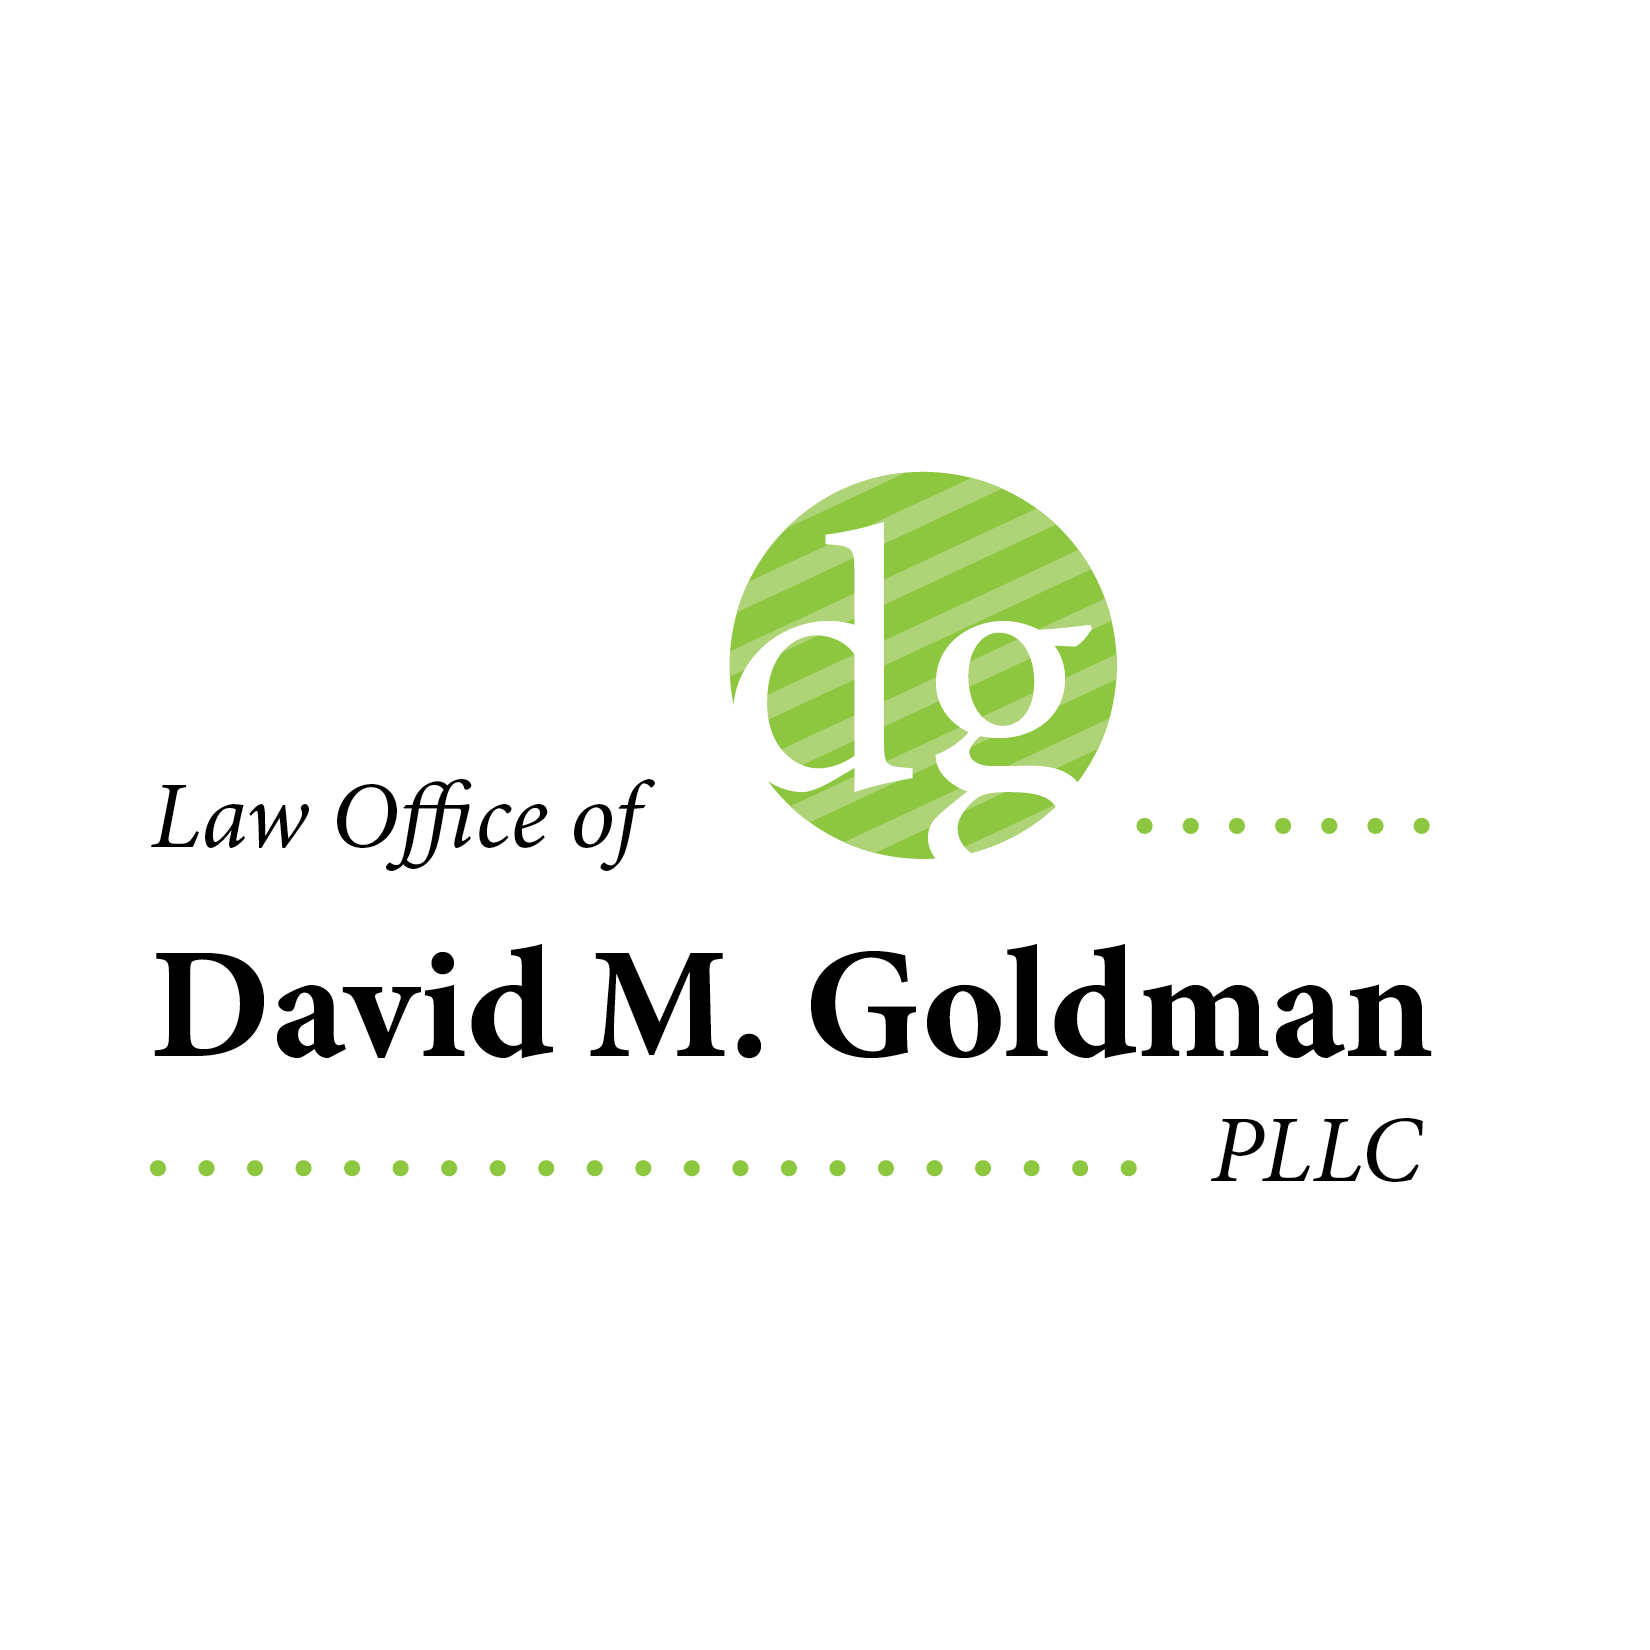 Law-Office David M. Goldman PLLC